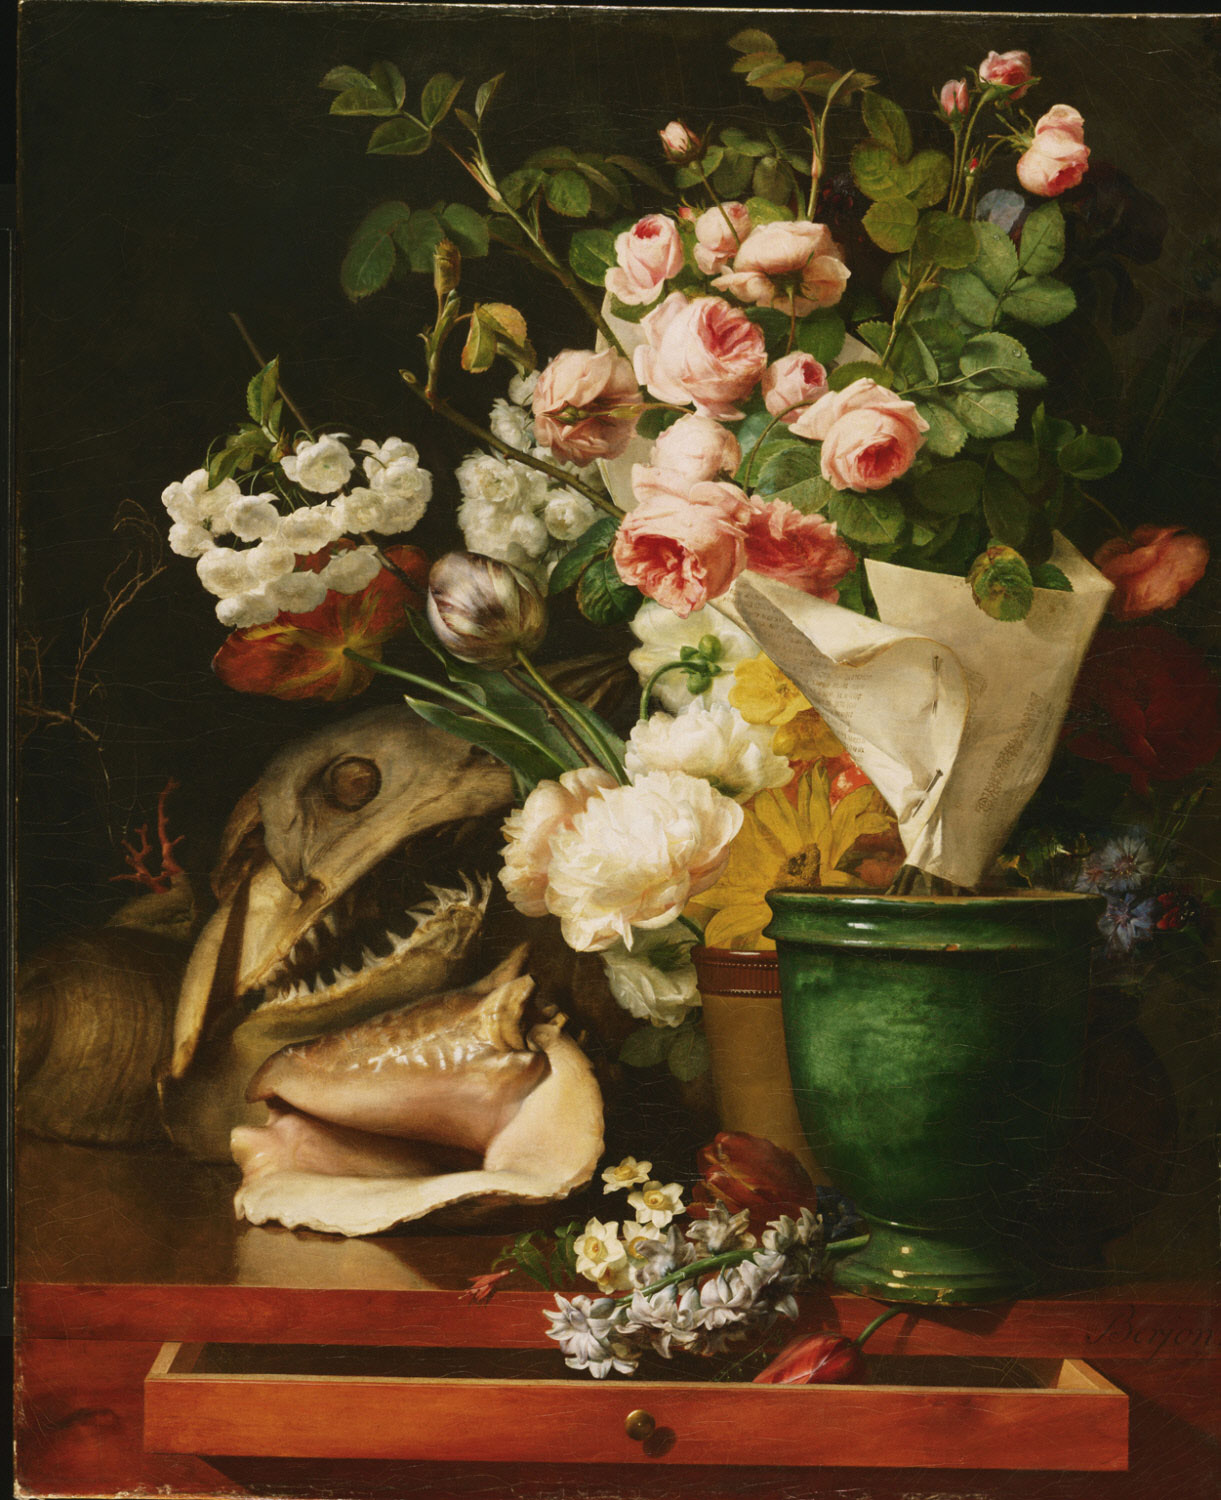 Still Life with Flowers, Shells, a Shark's Head, and Petrifications